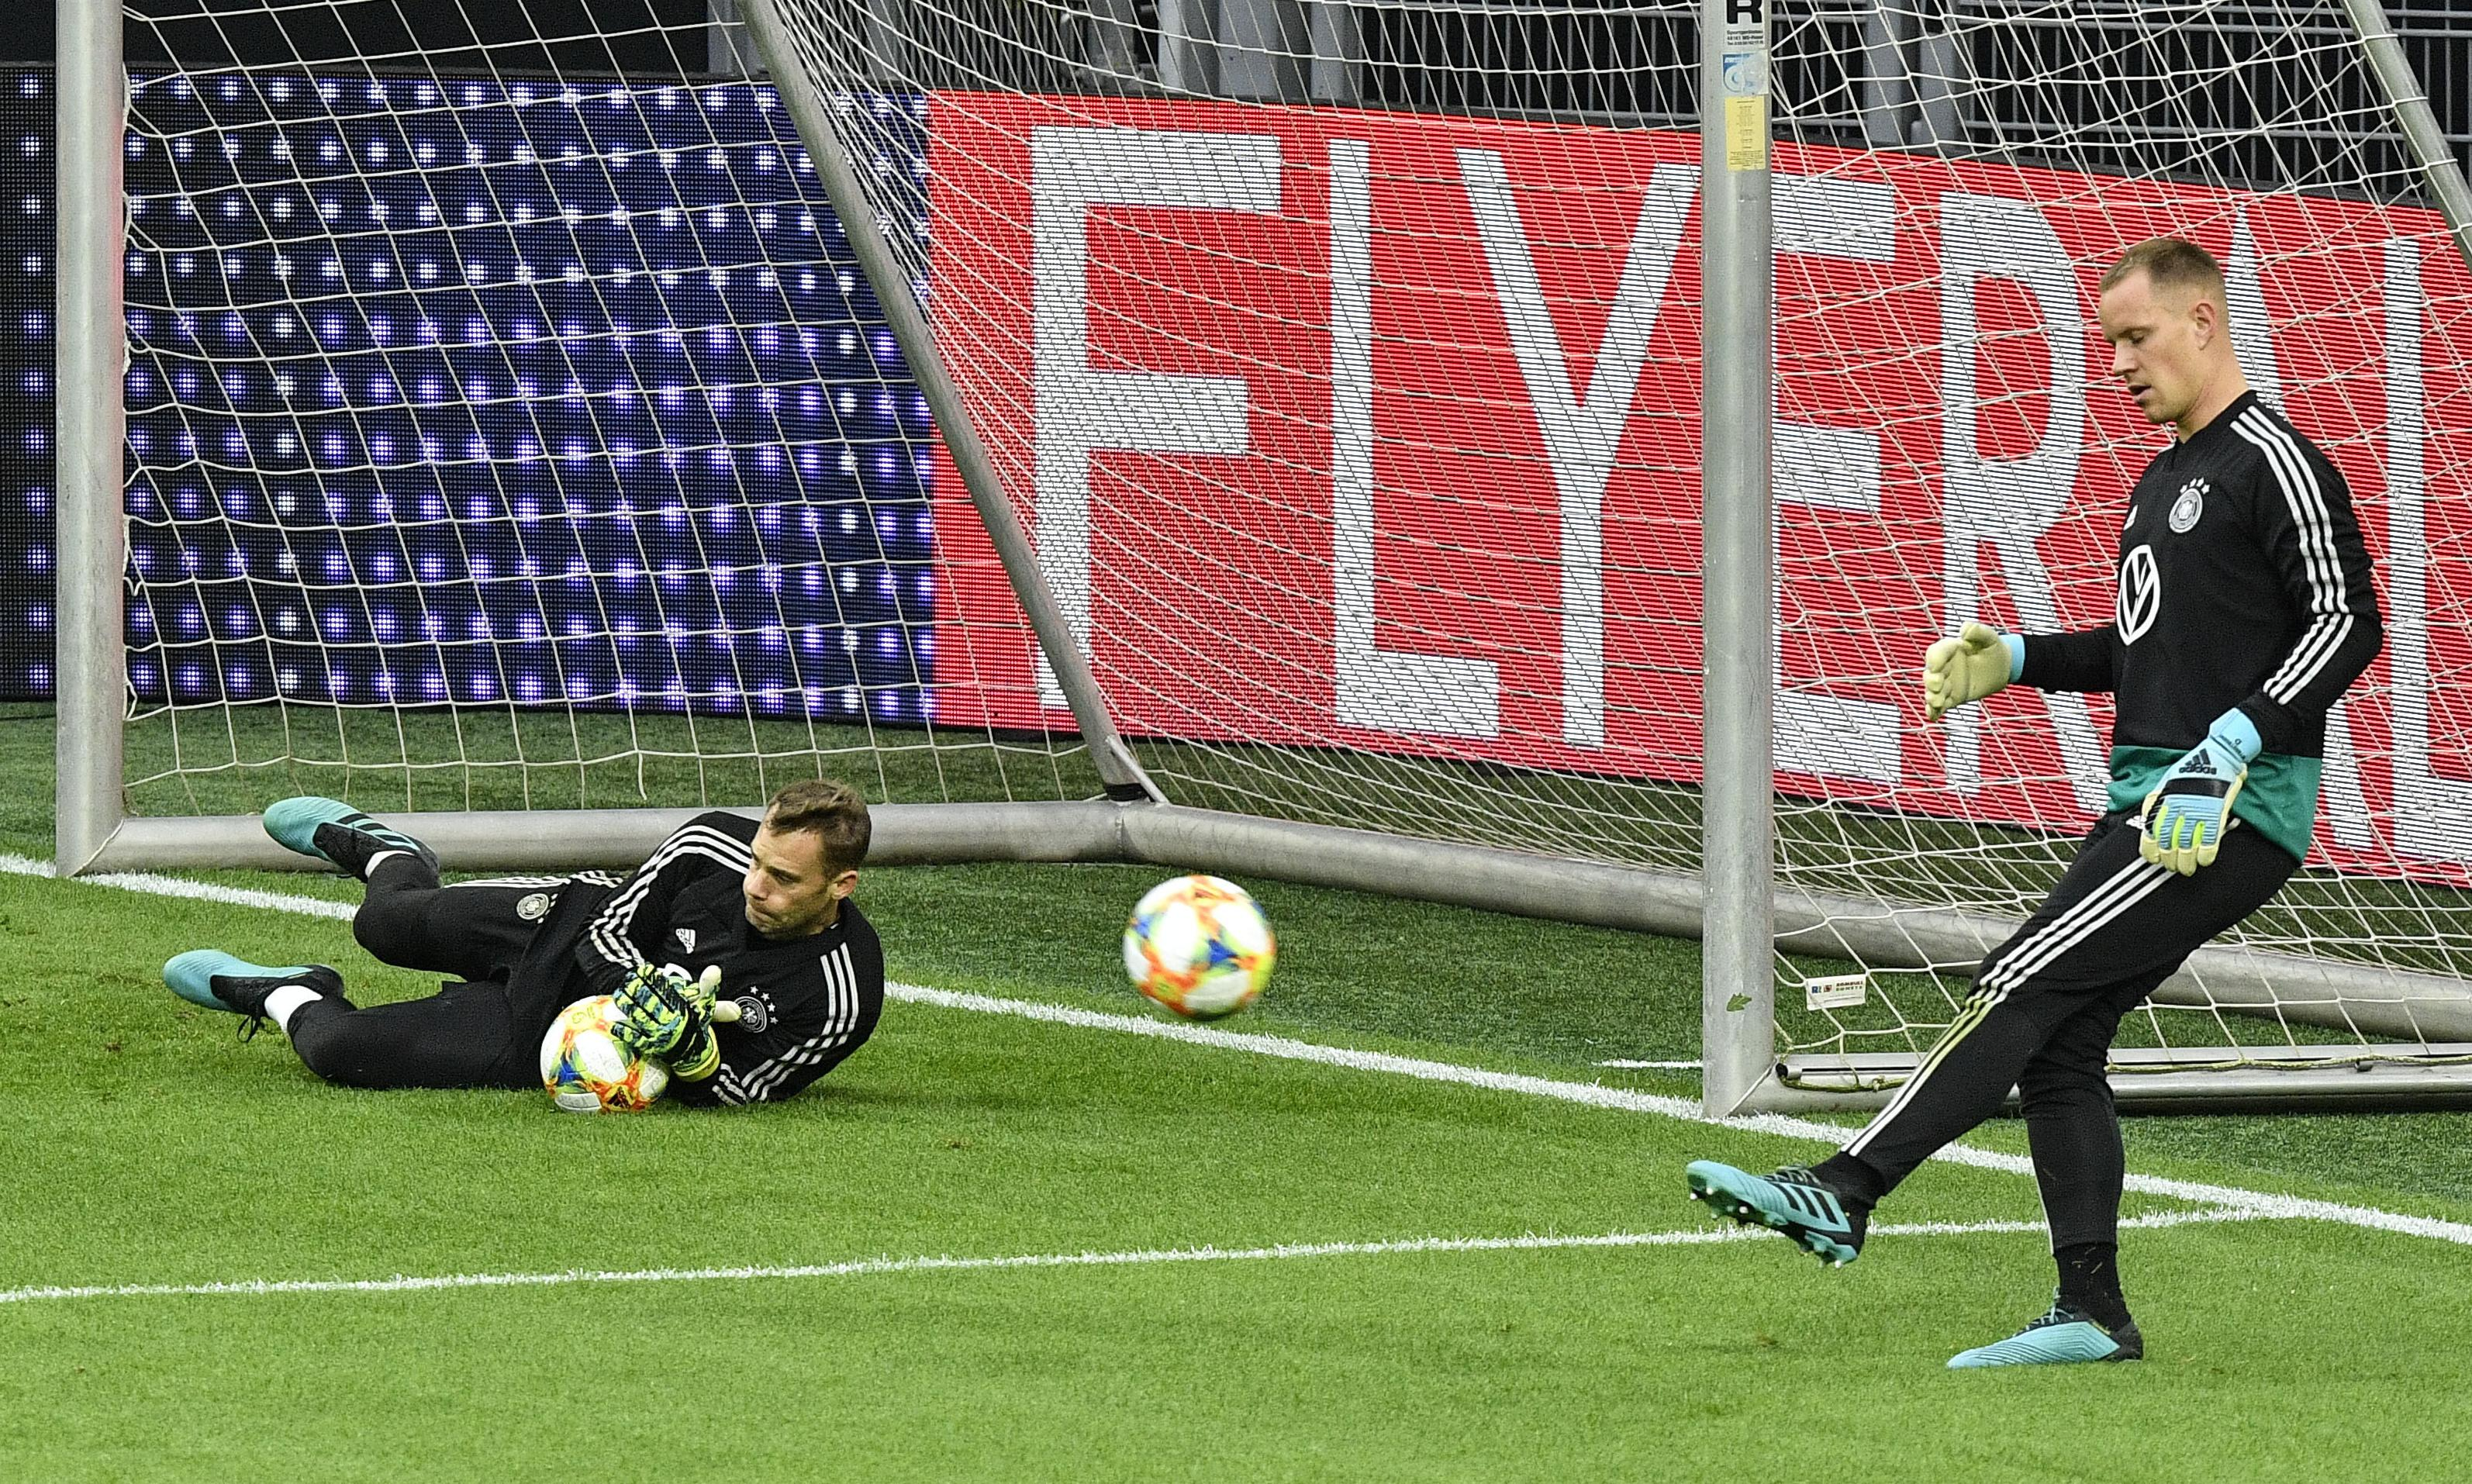 Feuding goalkeepers hint at a deeper malaise in Germany's squad